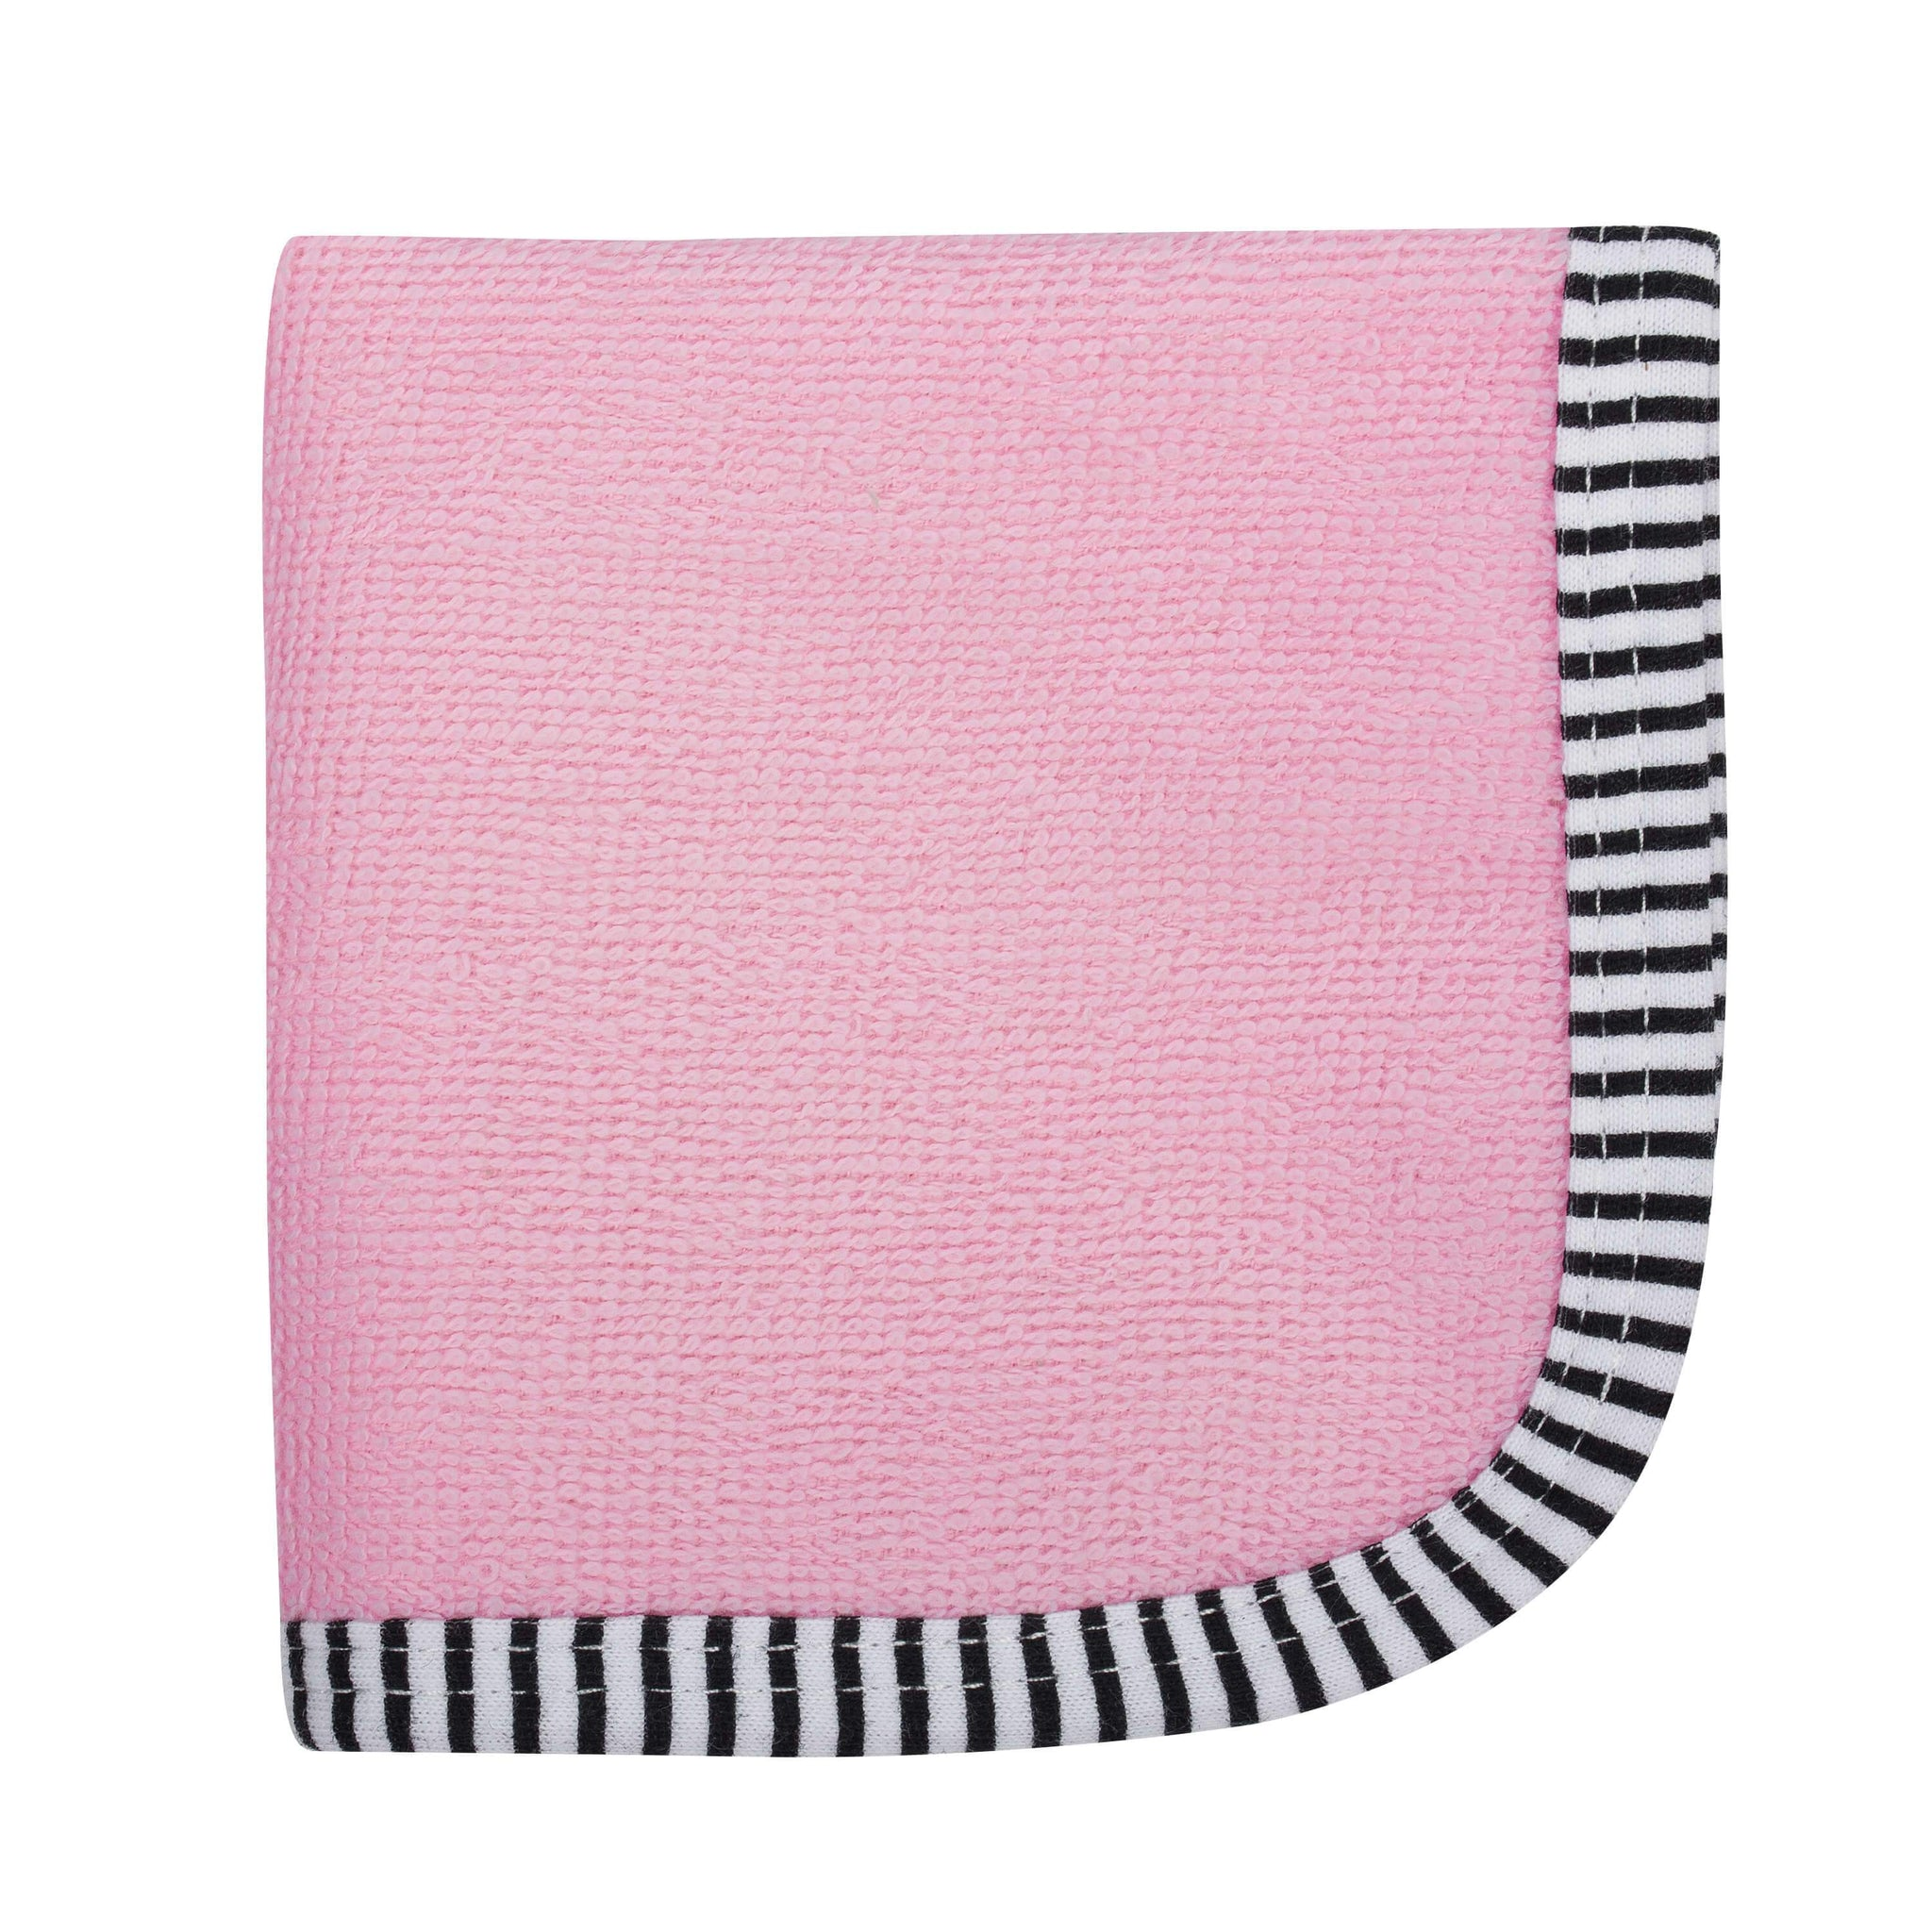 6-Pack Girls Pink Woven Washcloths-Gerber Childrenswear